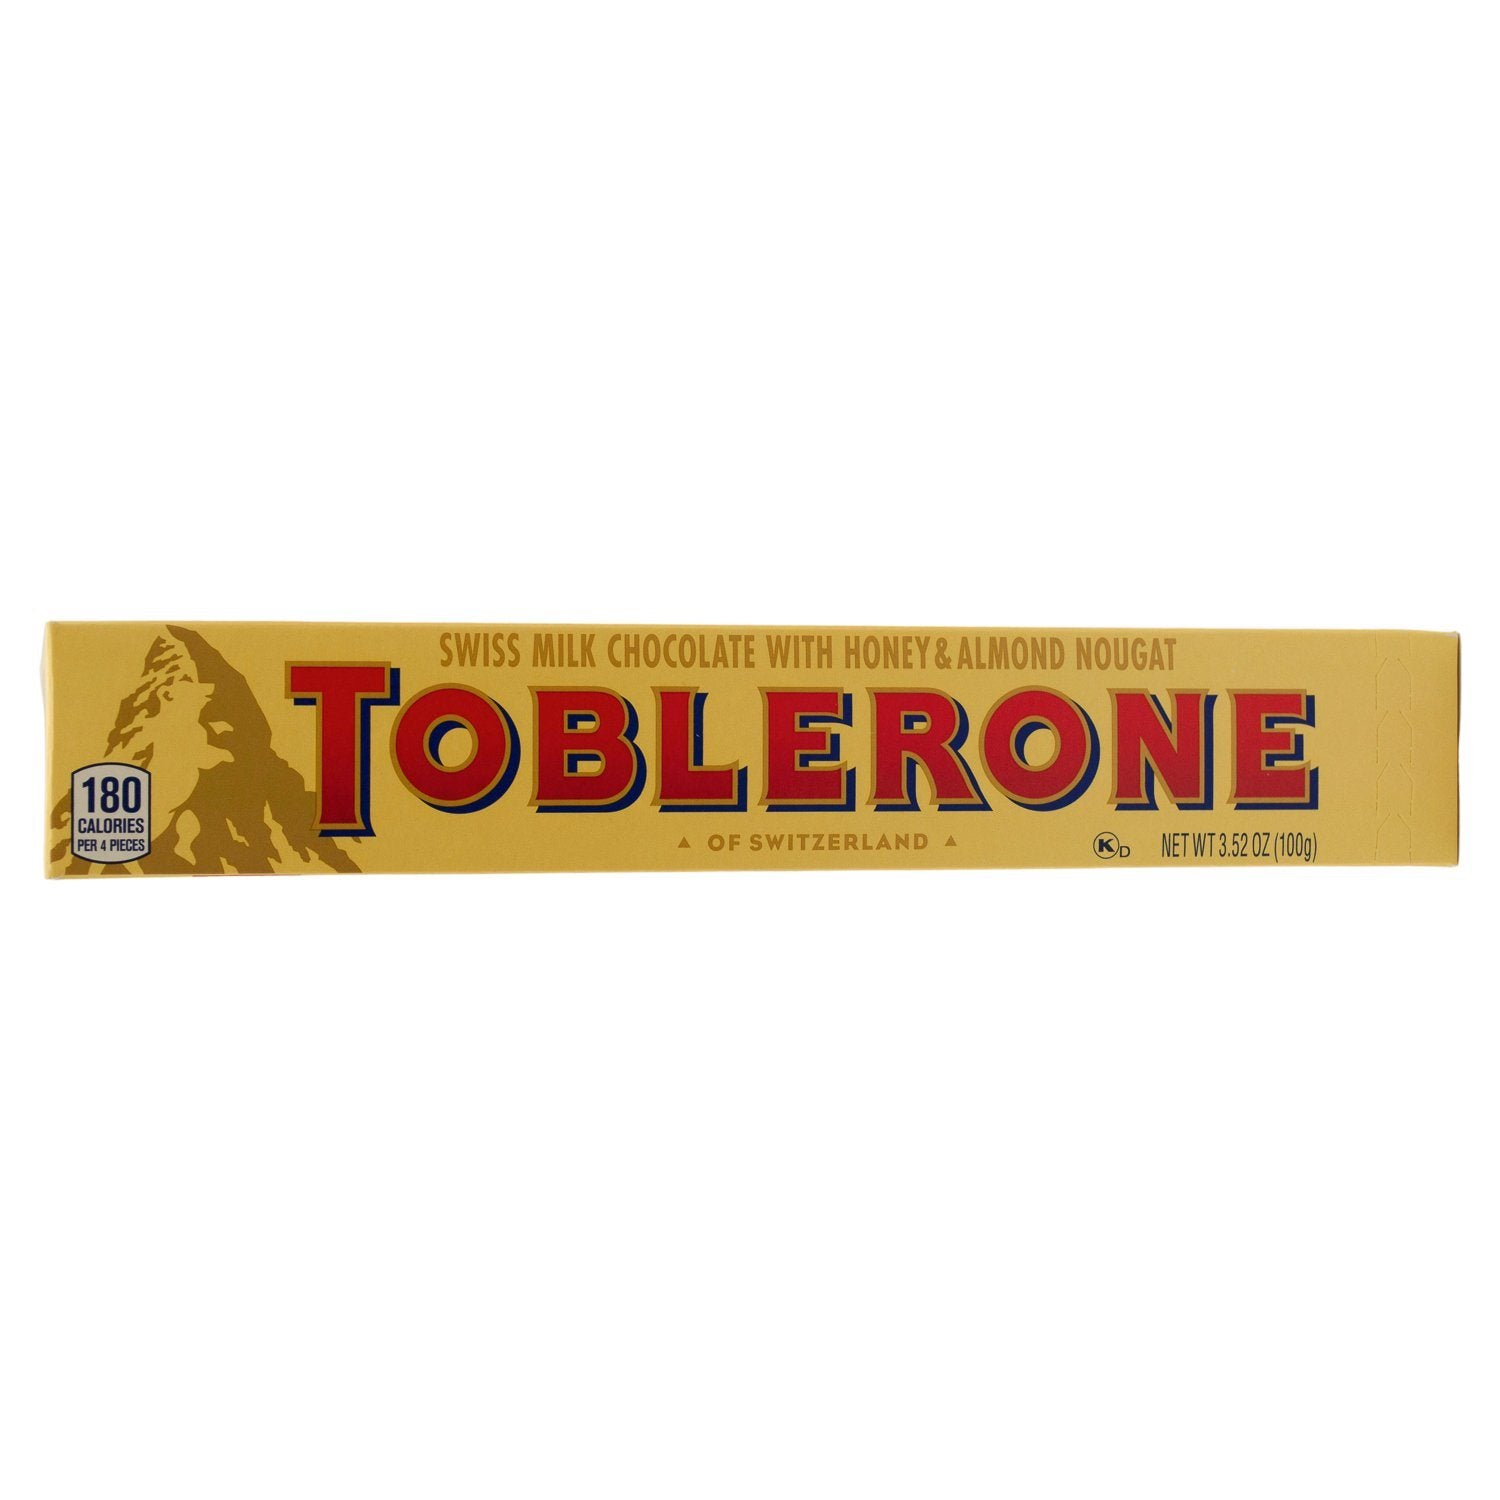 Toblerone Swiss Chocolate with Honey & Almond Nougat Meltable Toblerone Original 3.52 Ounce